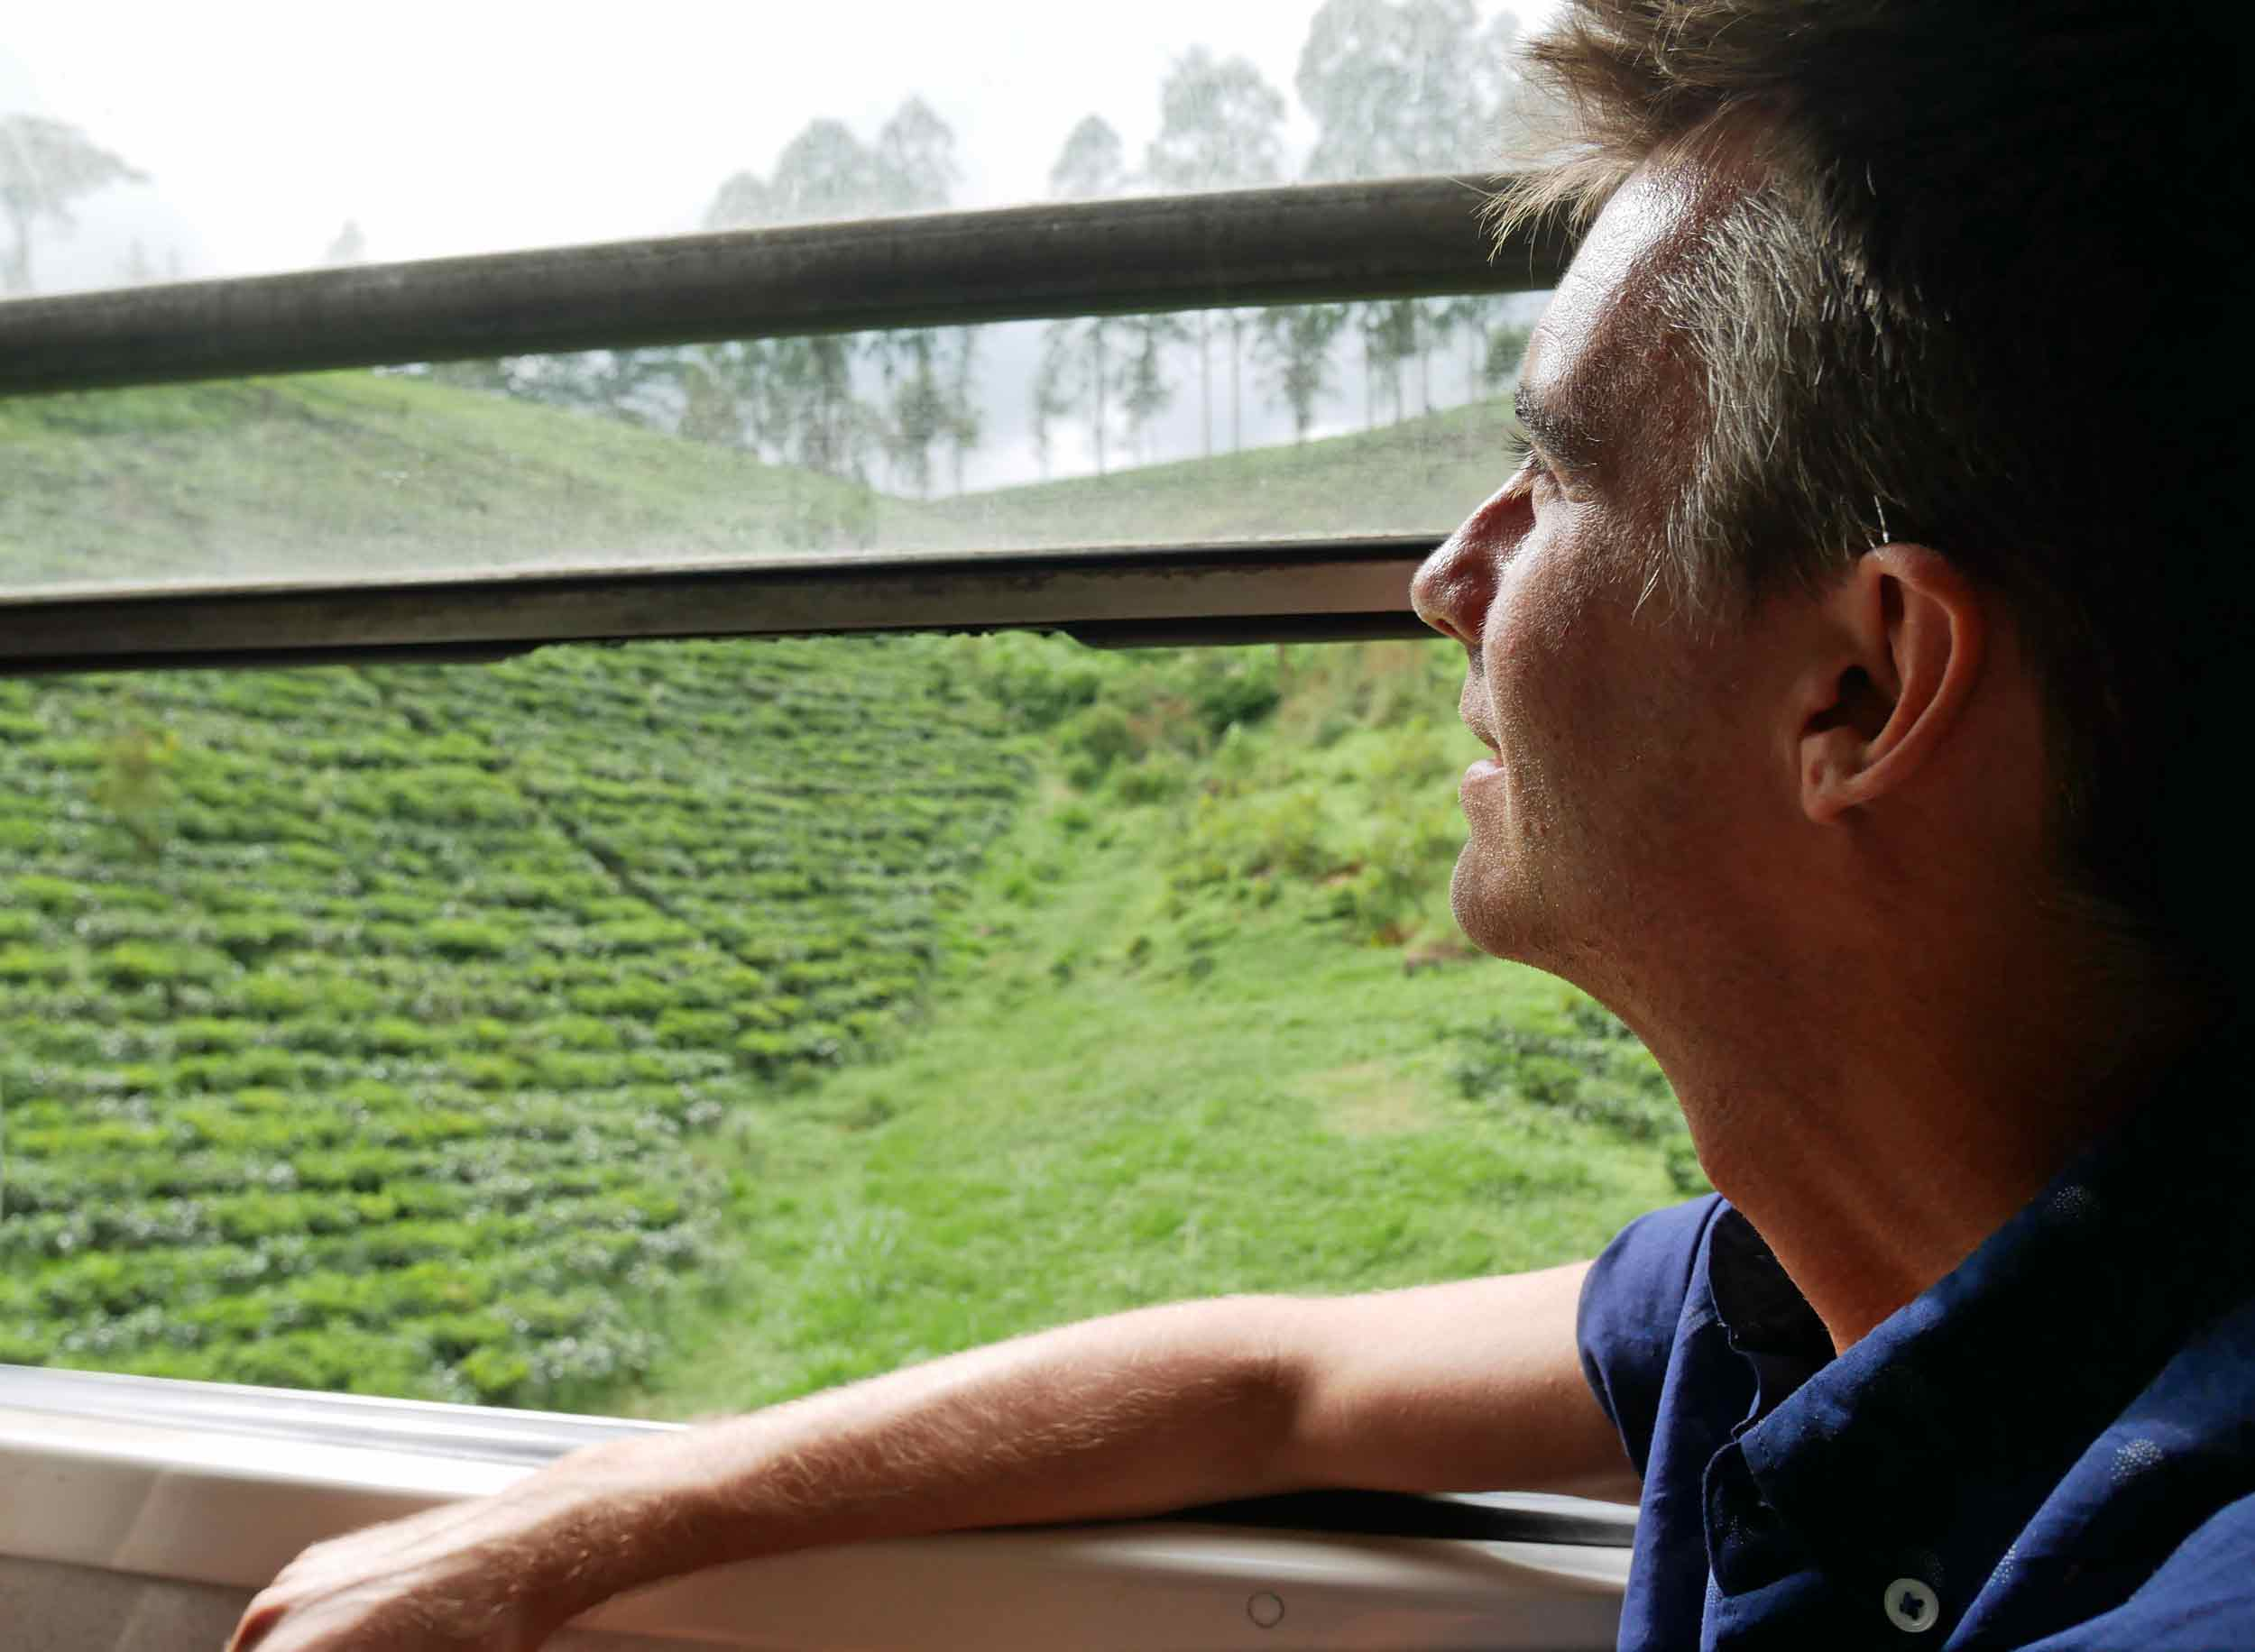 All aboard! The train journey from Kandy to Ella was truly spectacular, taking us through lush forest, tea plantations and more (Dec 15).